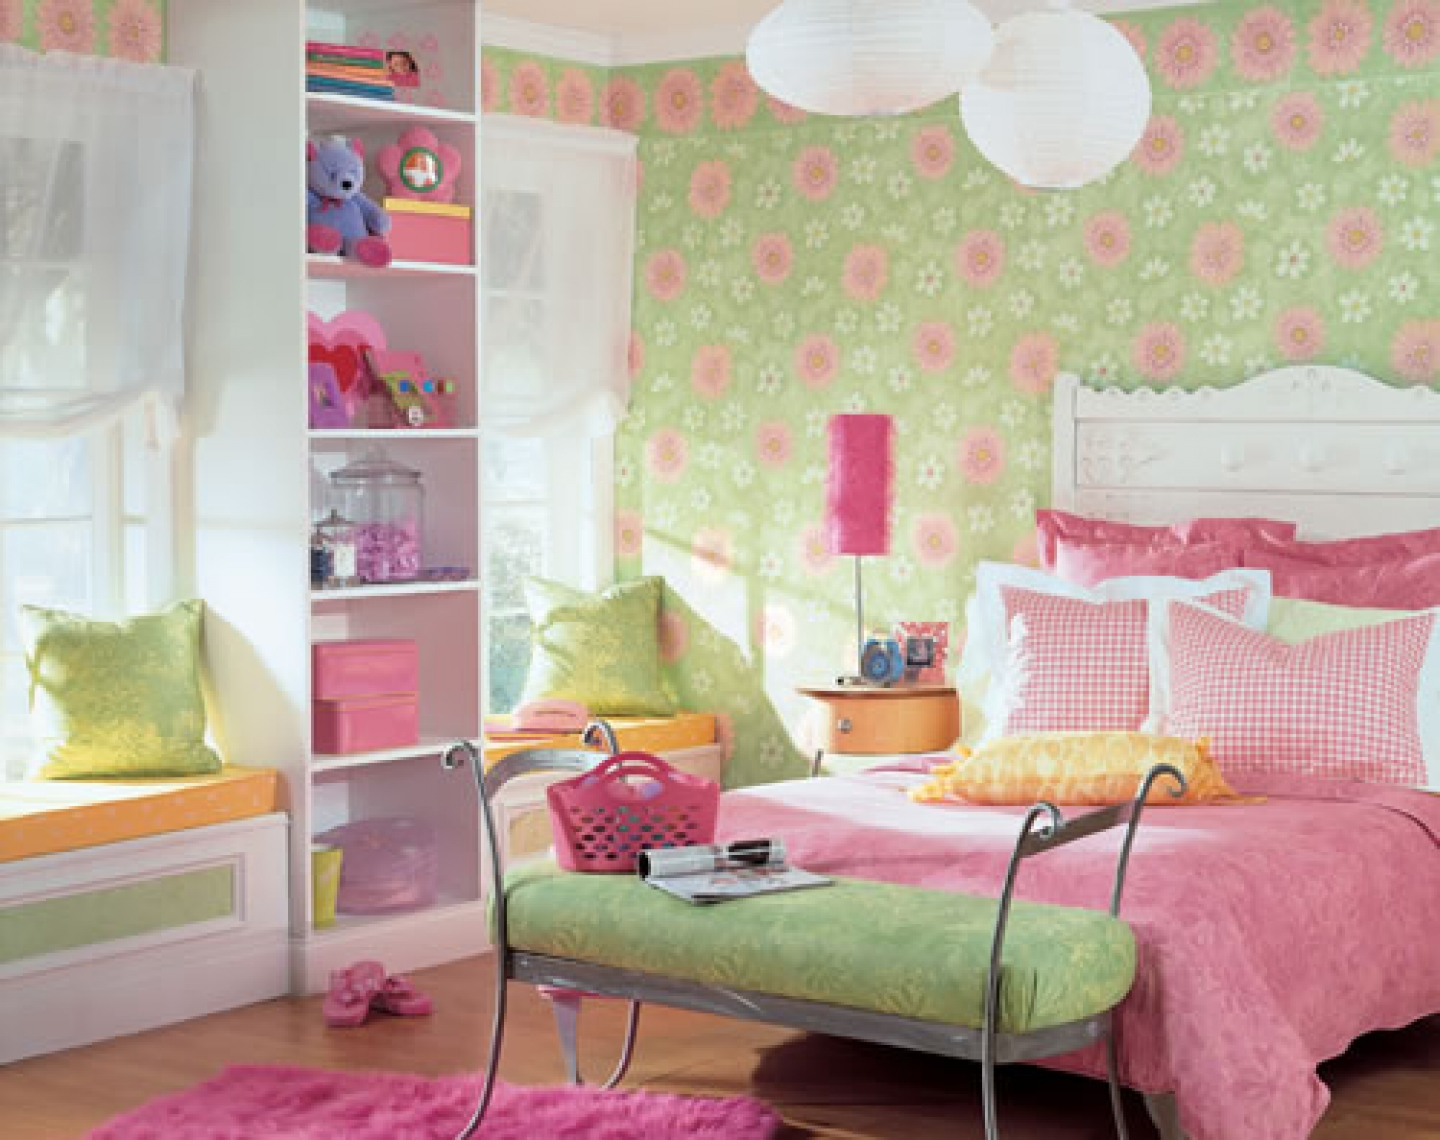 Modern girls bedroom wallpaper ideas girls bedroom wallpaper girls 1440x1140